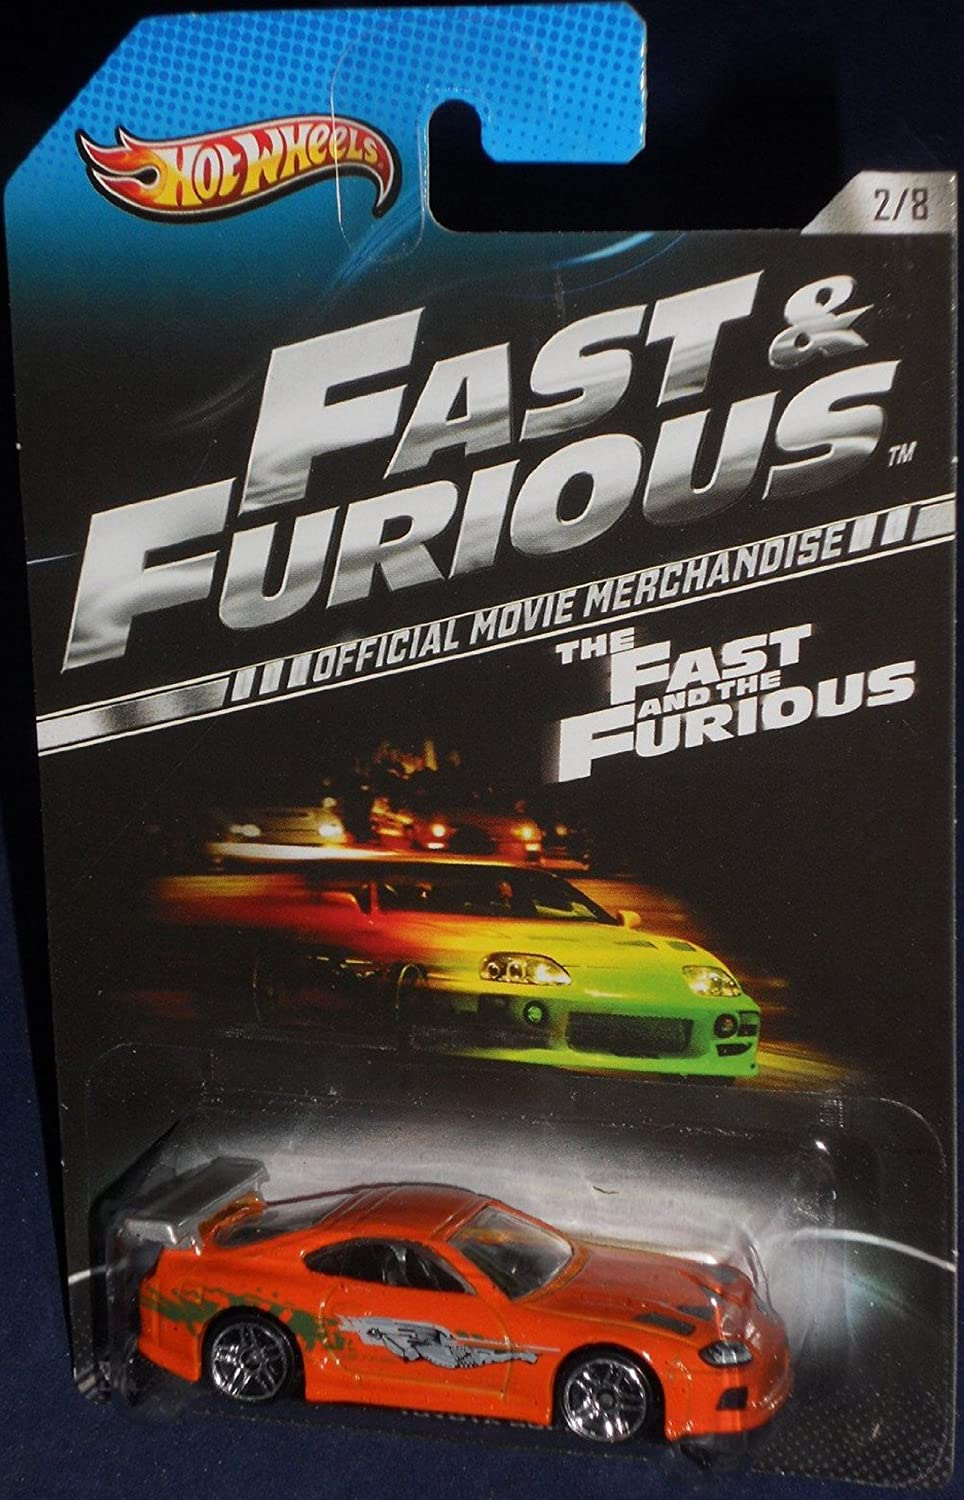 2013 Hot Wheels The Fast and the Furious Official Movie Merchandise Limited Edition Toyota Supra 2 8